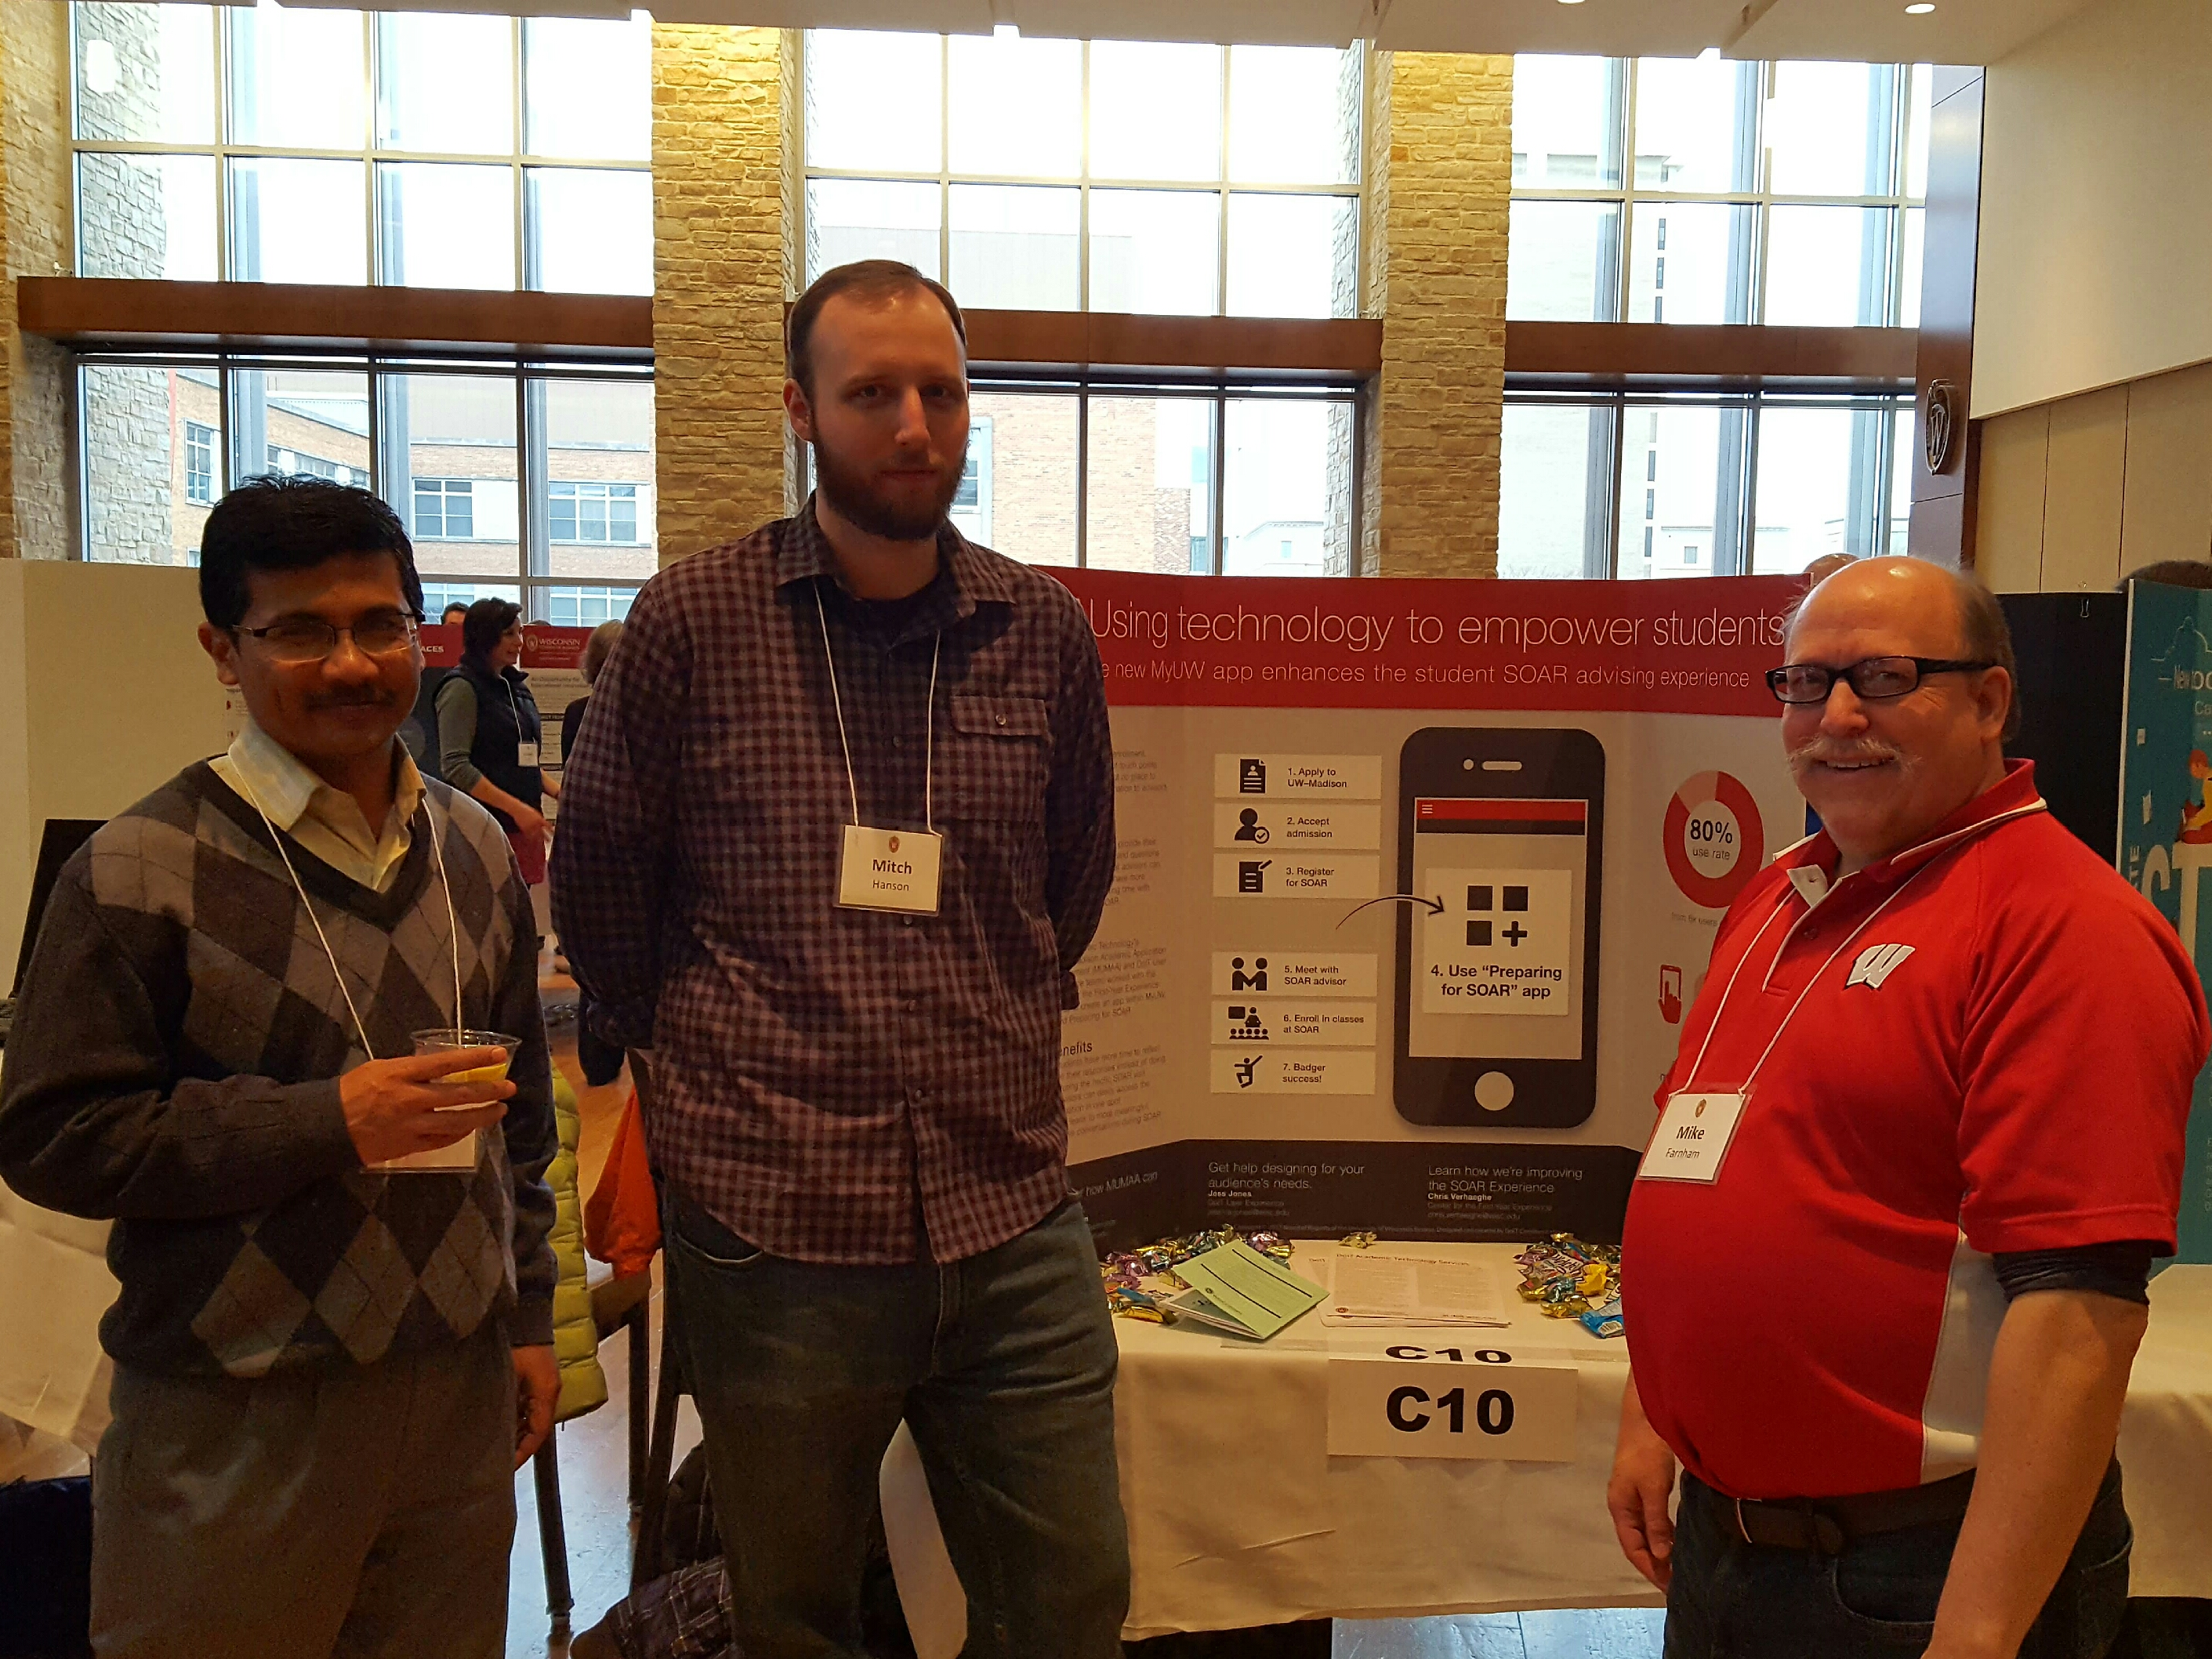 Saikat Sengupta, Mitch Hanson and Mike Farnham at the Preparing for SOAR App poster.